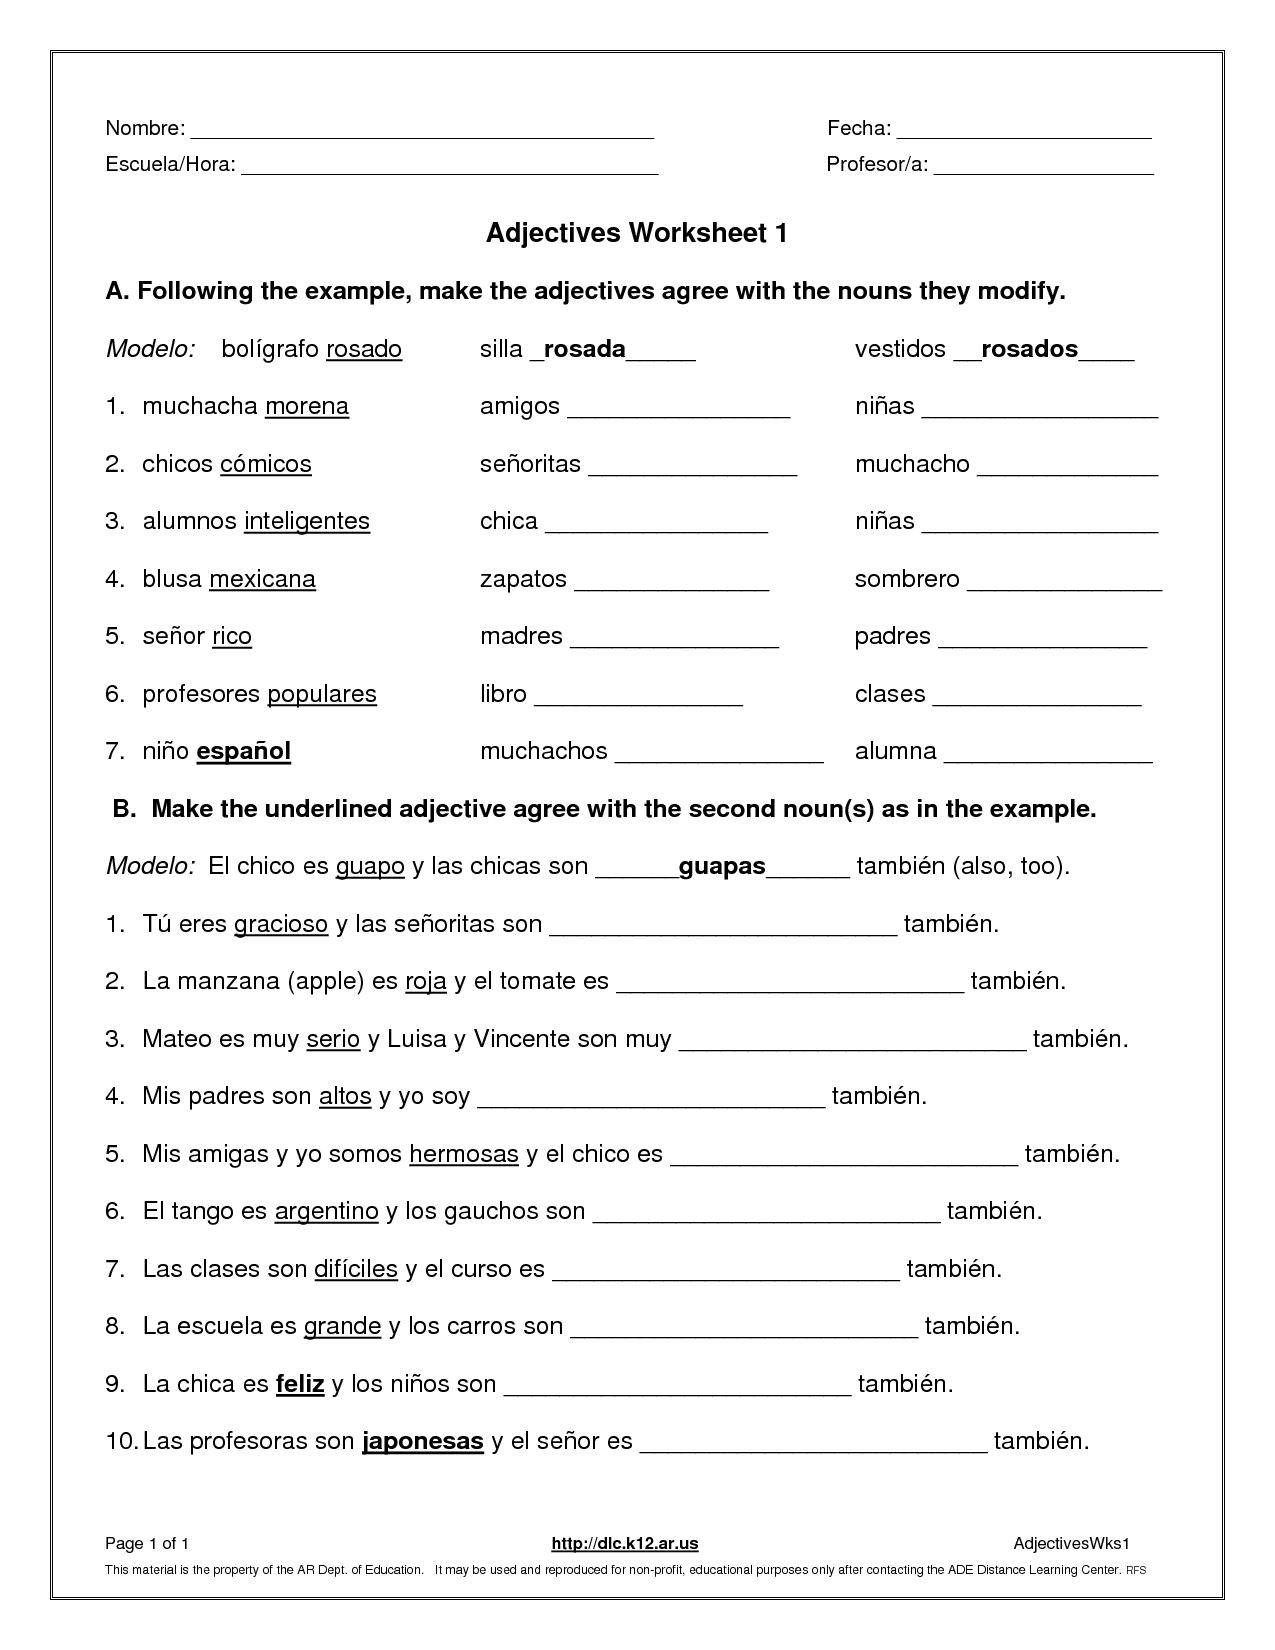 Adjectives Pictures Worksheets